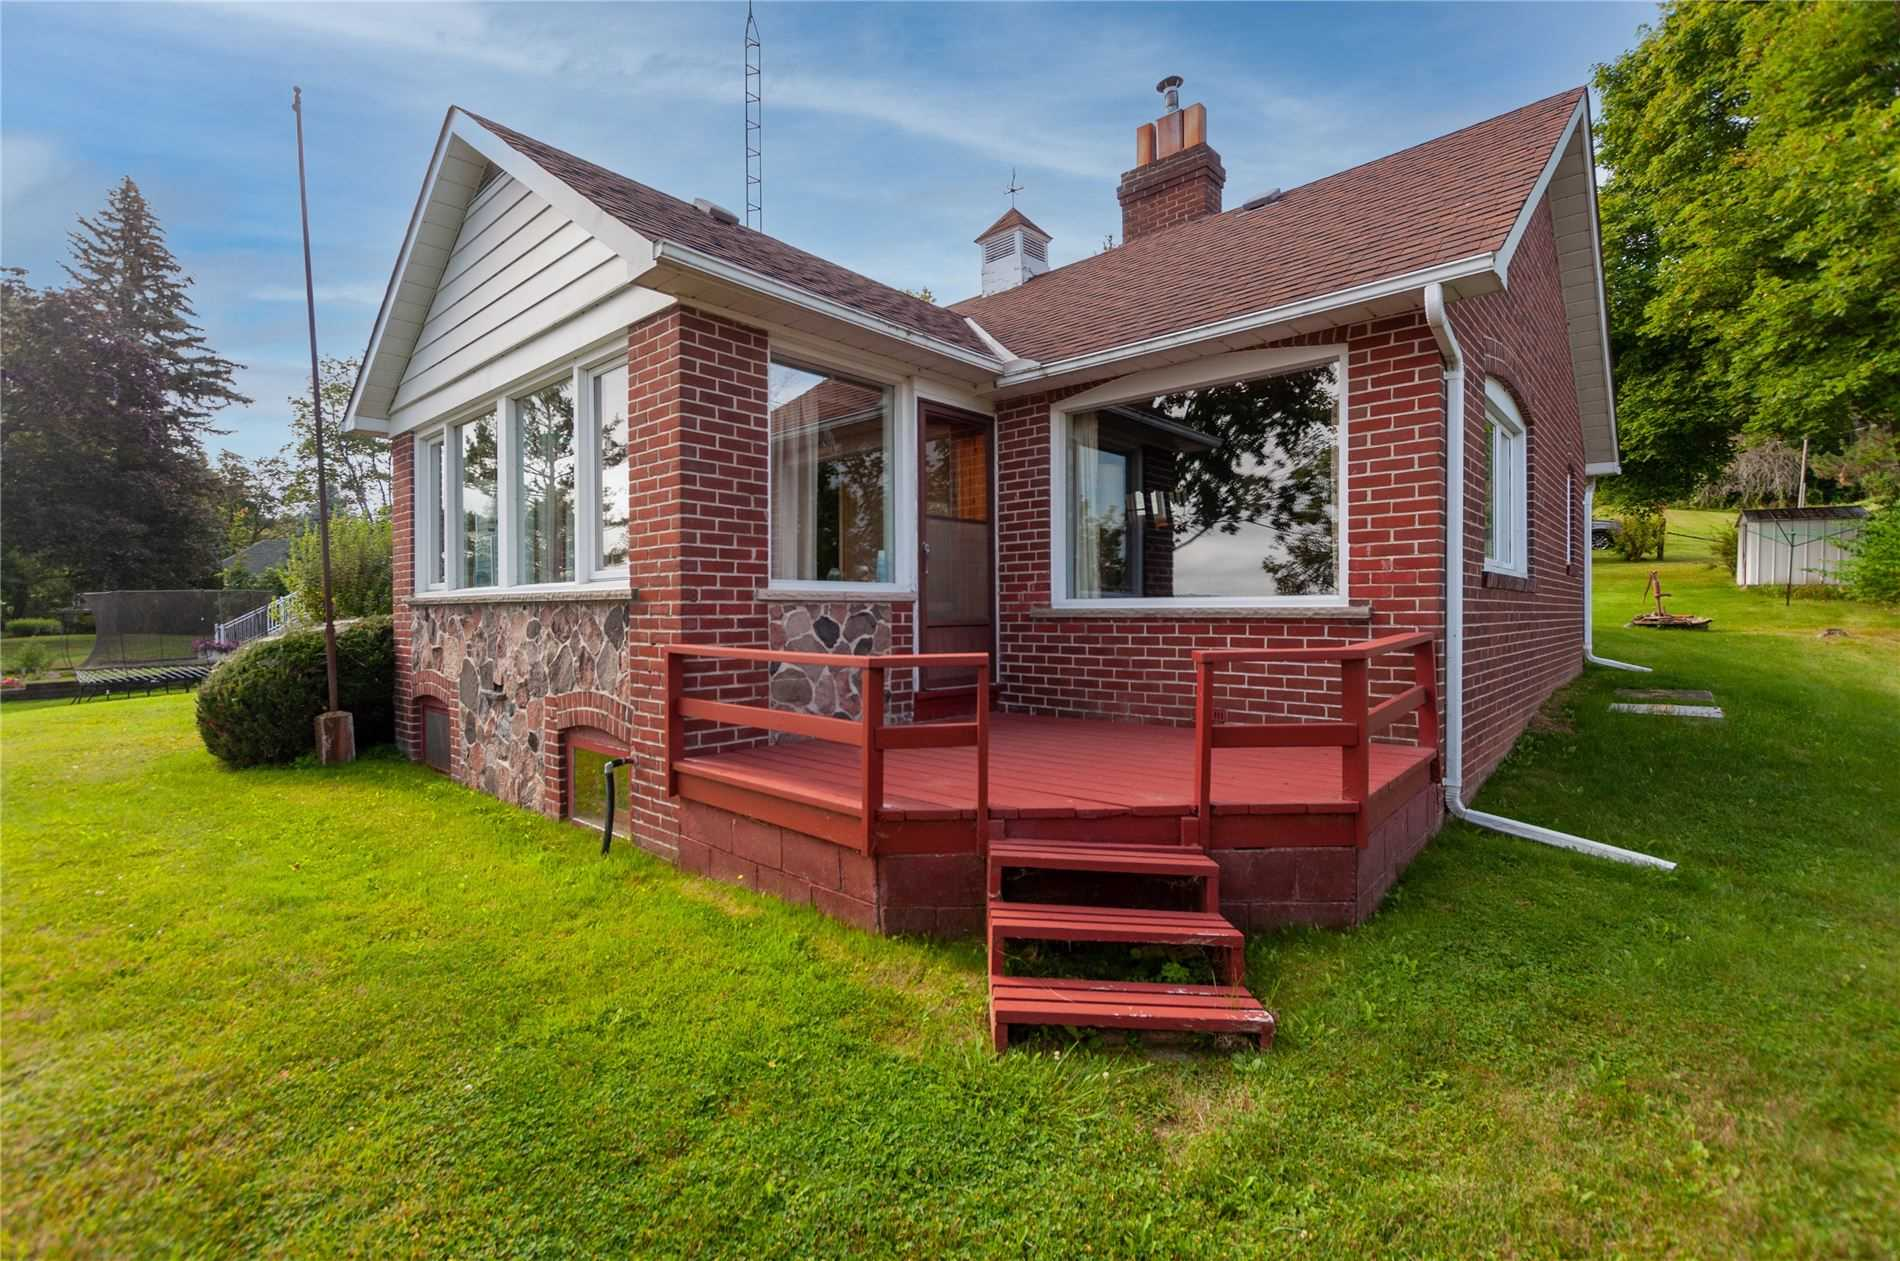 5358 Harris Boatworks Rd, Hamilton Township, Ontario K0K 2E0, 2 Bedrooms Bedrooms, 8 Rooms Rooms,1 BathroomBathrooms,Detached,For Sale,Harris Boatworks,X5351112